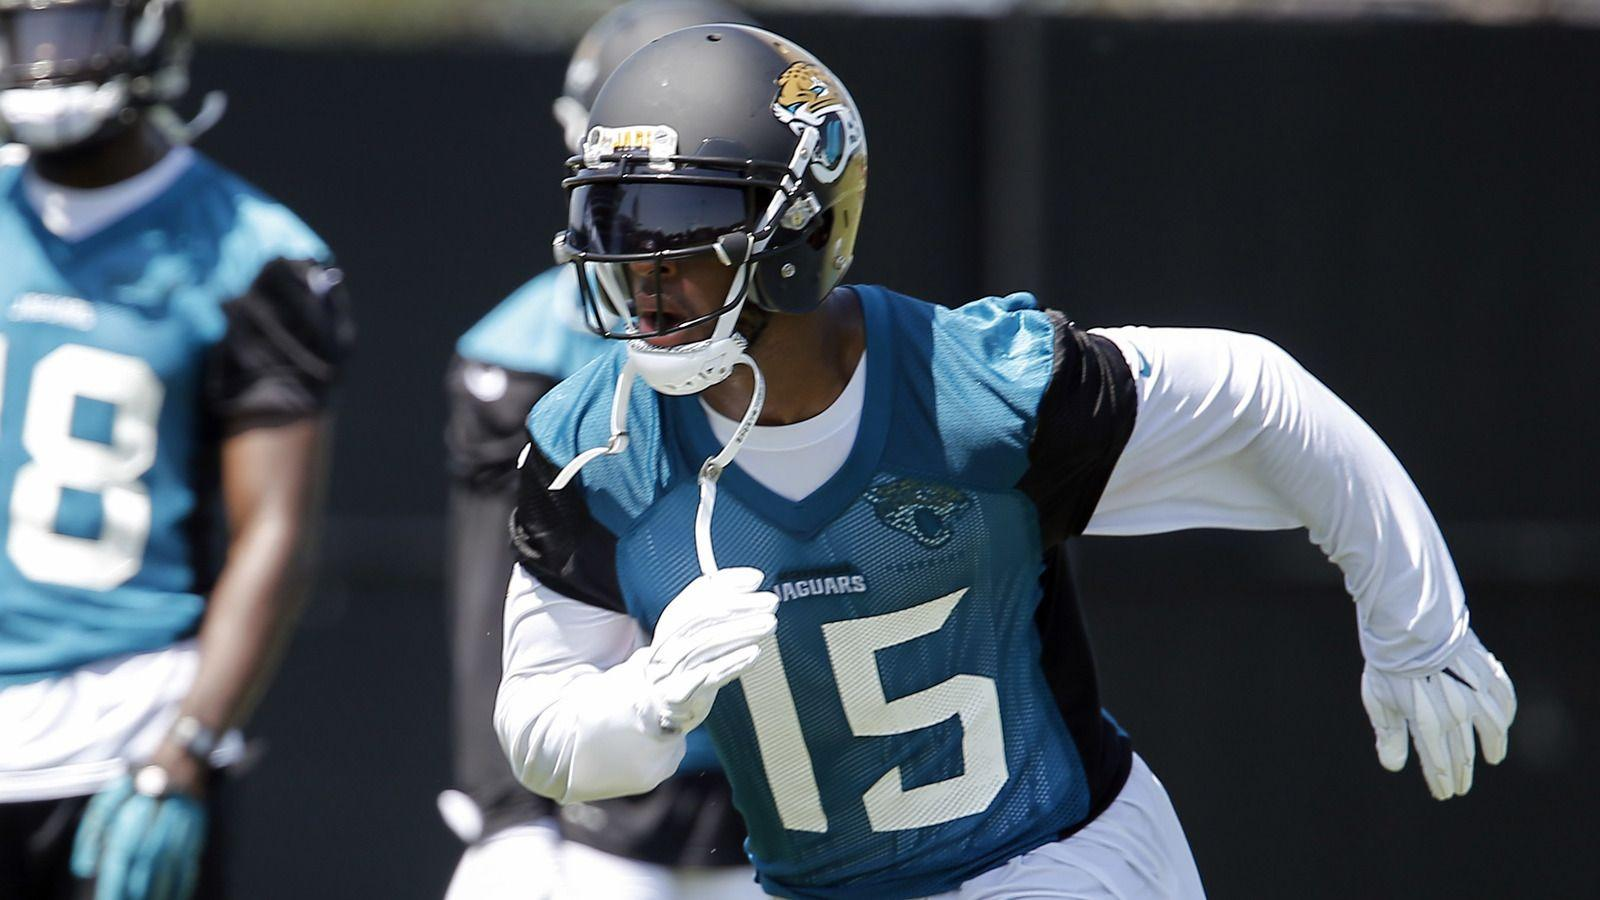 Blake Bortles patted Allen Robinson on injured knee | Yardbarker.com